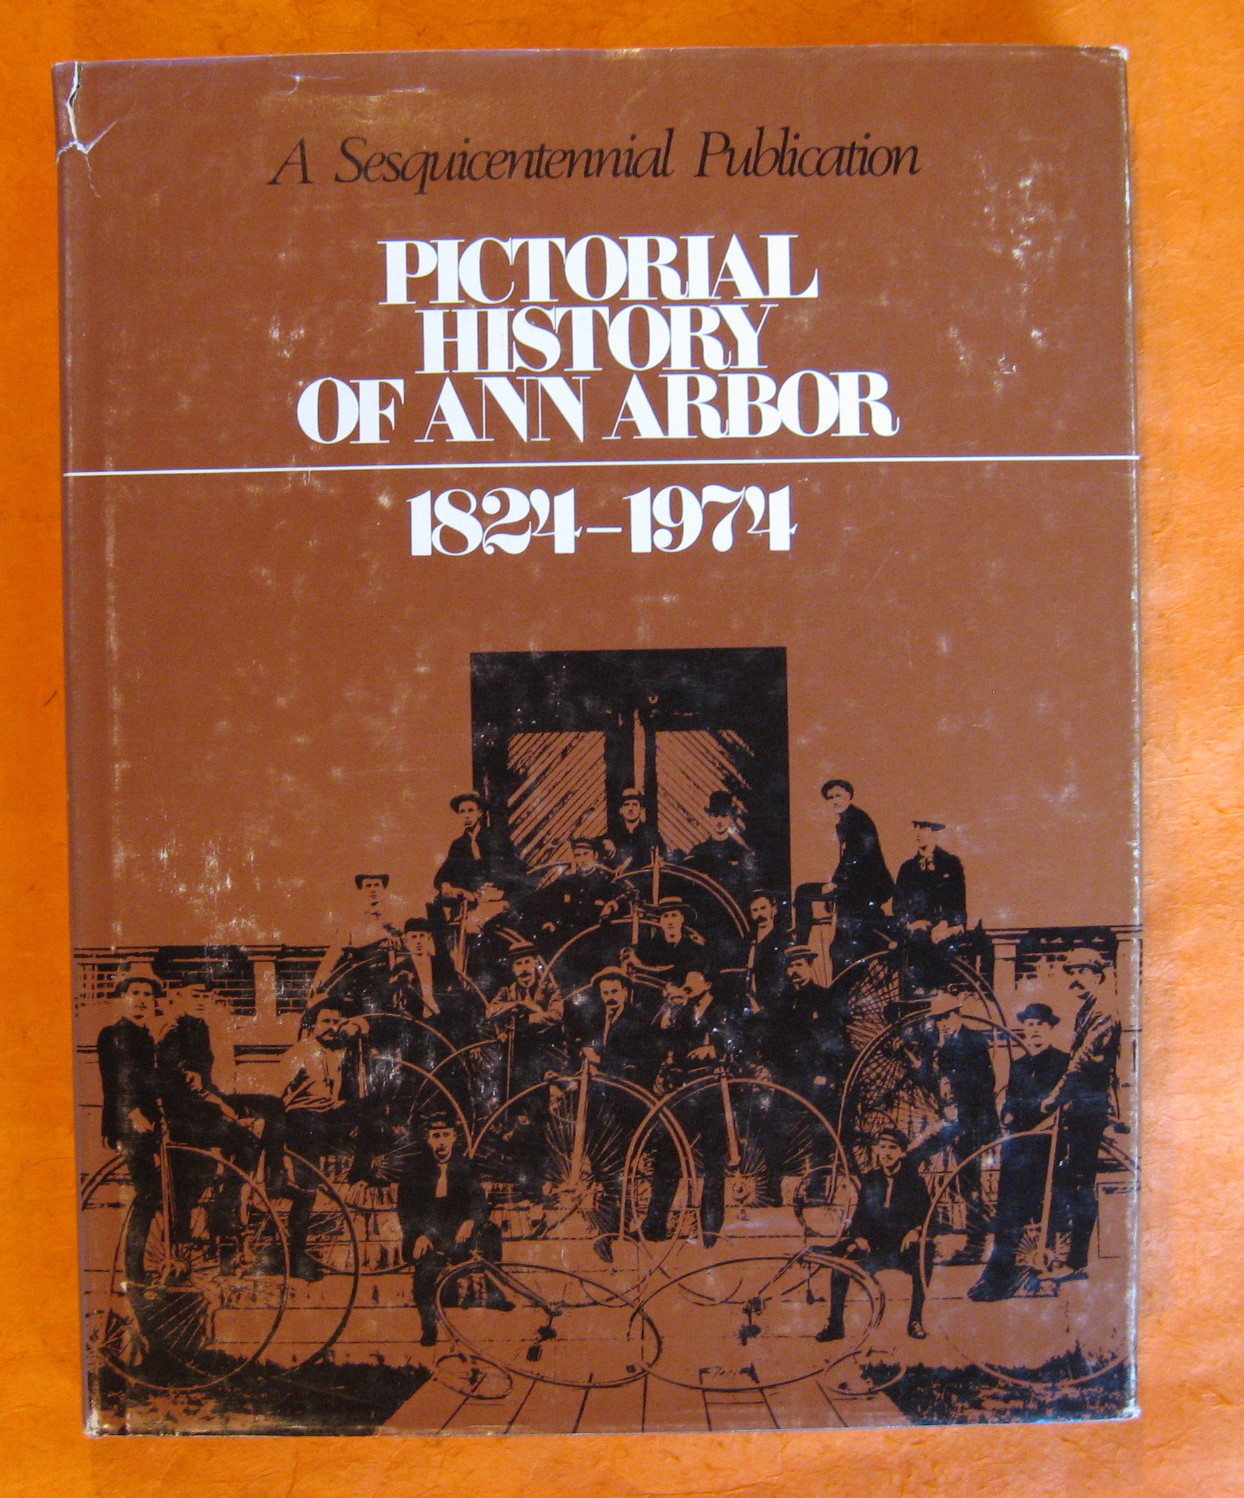 Pictorial History of Ann Arbor 1824-1974, Cocks, J. Fraser